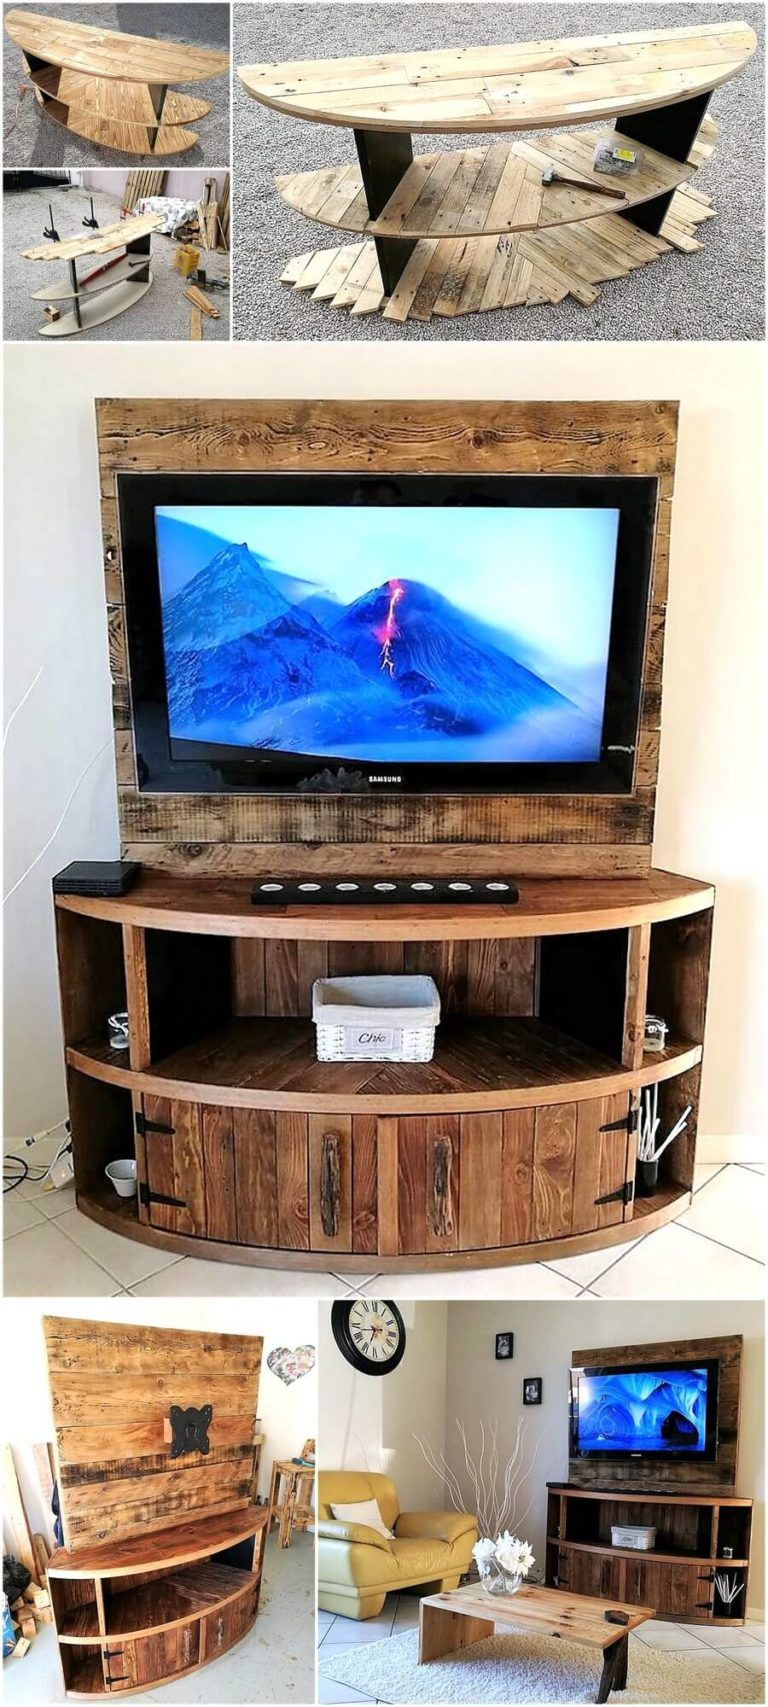 Diy wood pallet tv stand plan in 2020 tv stand plans